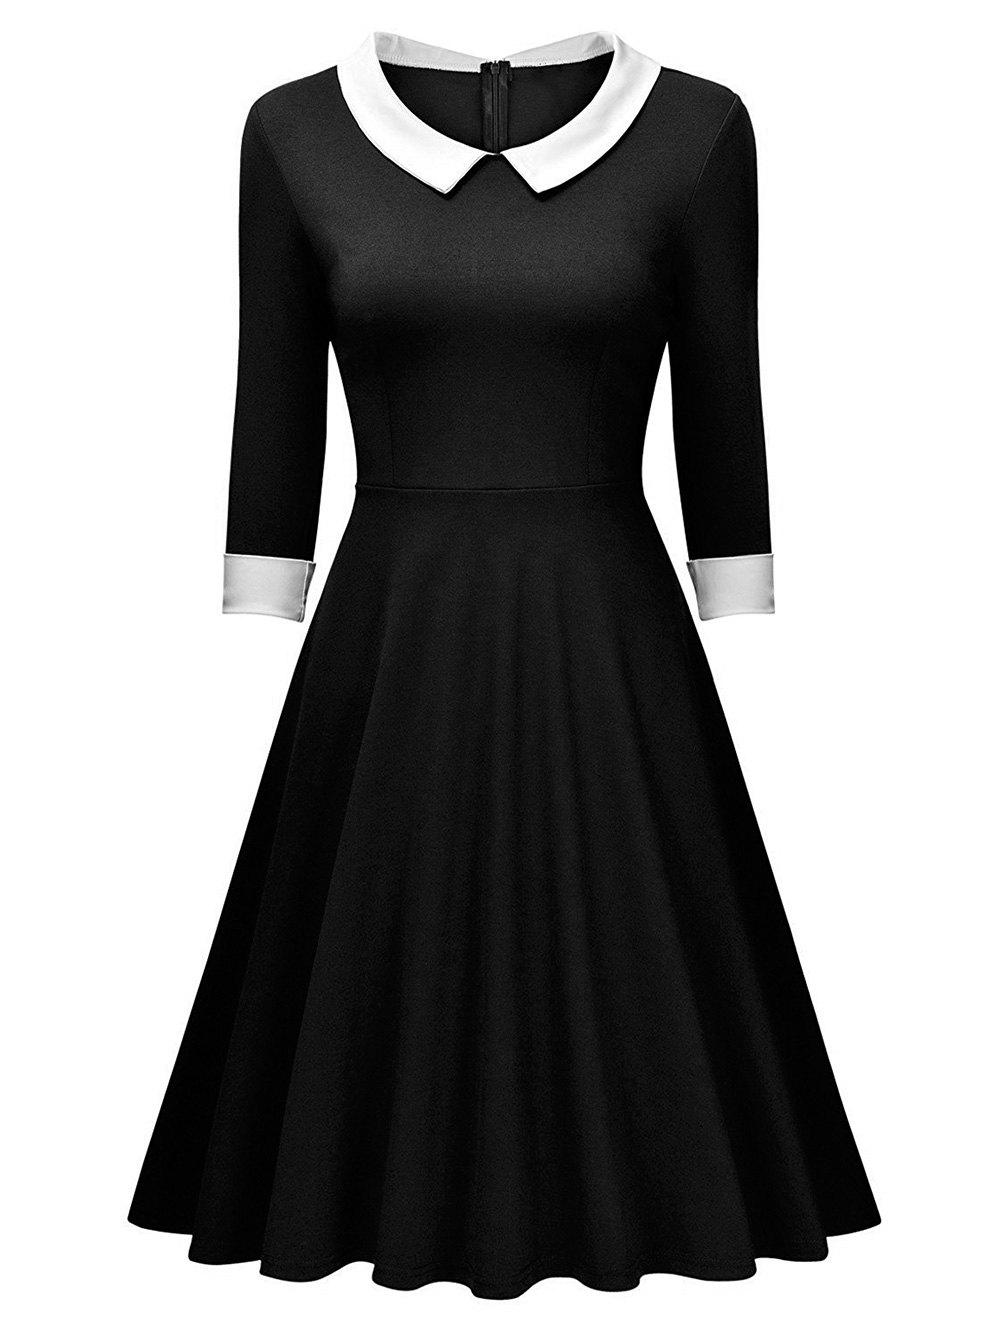 Retro Women Swing Long Sleeve DressWOMEN<br><br>Size: M; Color: BLACK; Style: Cute; Material: Cotton,Cotton Blend,Polyester; Silhouette: Ball Gown; Dresses Length: Knee-Length; Neckline: Flat Collar; Sleeve Length: 3/4 Length Sleeves; Pattern Type: Patchwork; With Belt: No; Season: Fall,Winter; Weight: 0.468kg; Package Contents: 1 x Dress;